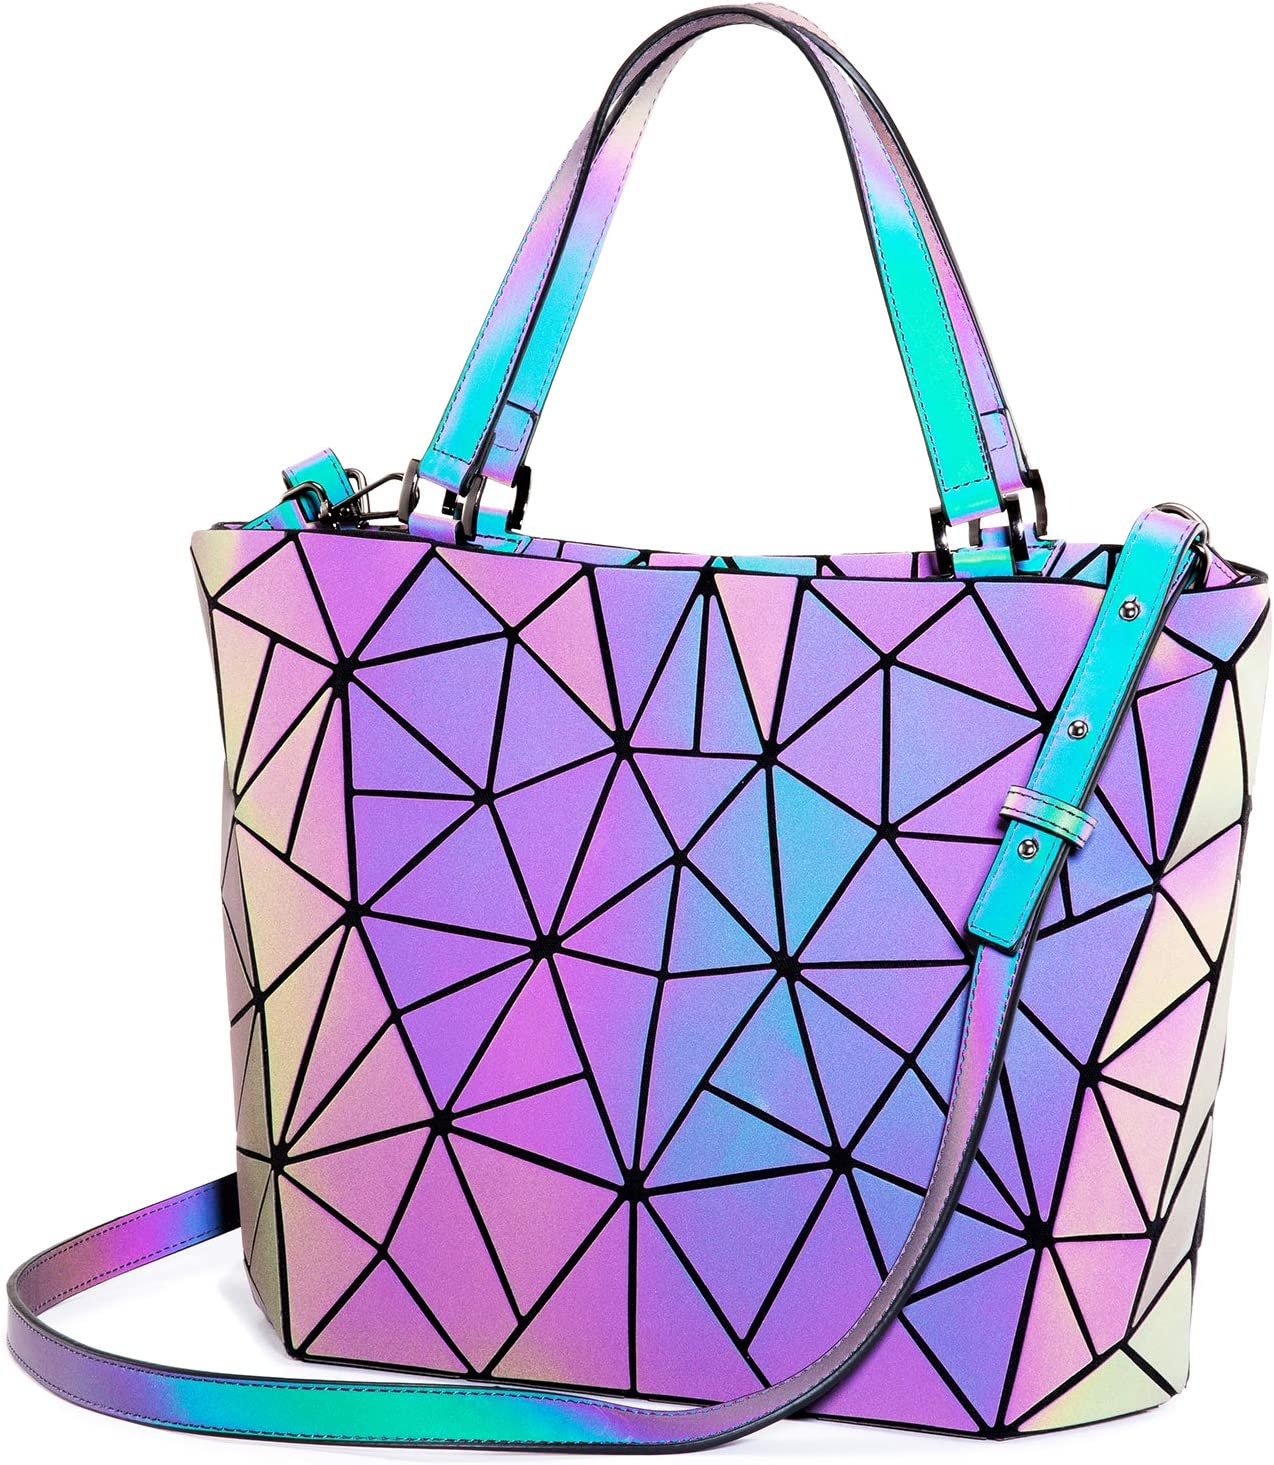 Geometric Handbag, LOVEVOOK Luminous Reflective Bag, Holographic Shoulder Bag Tote Bag Shopper for Women, for Vegans